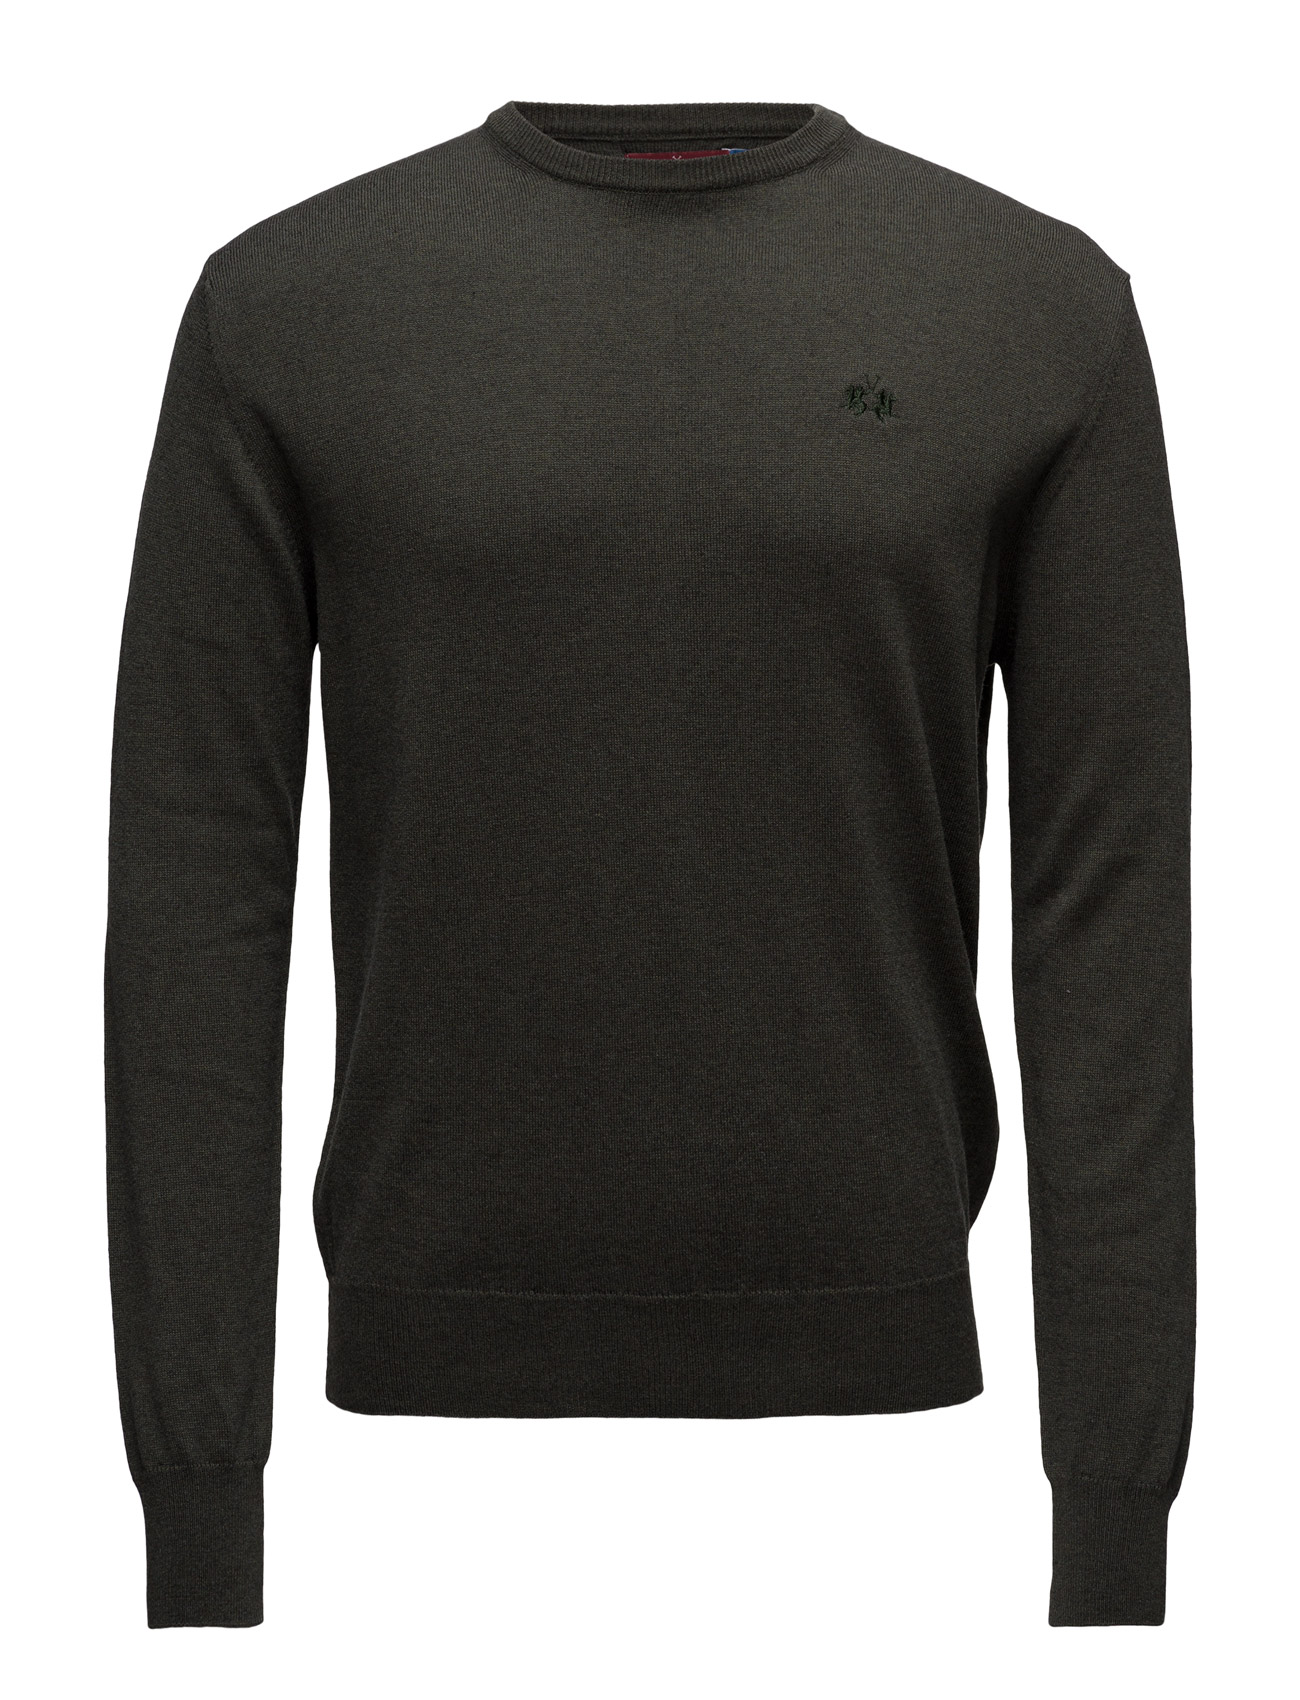 la martina – La martina-man crew neck sweat.  wool/co på boozt.com dk